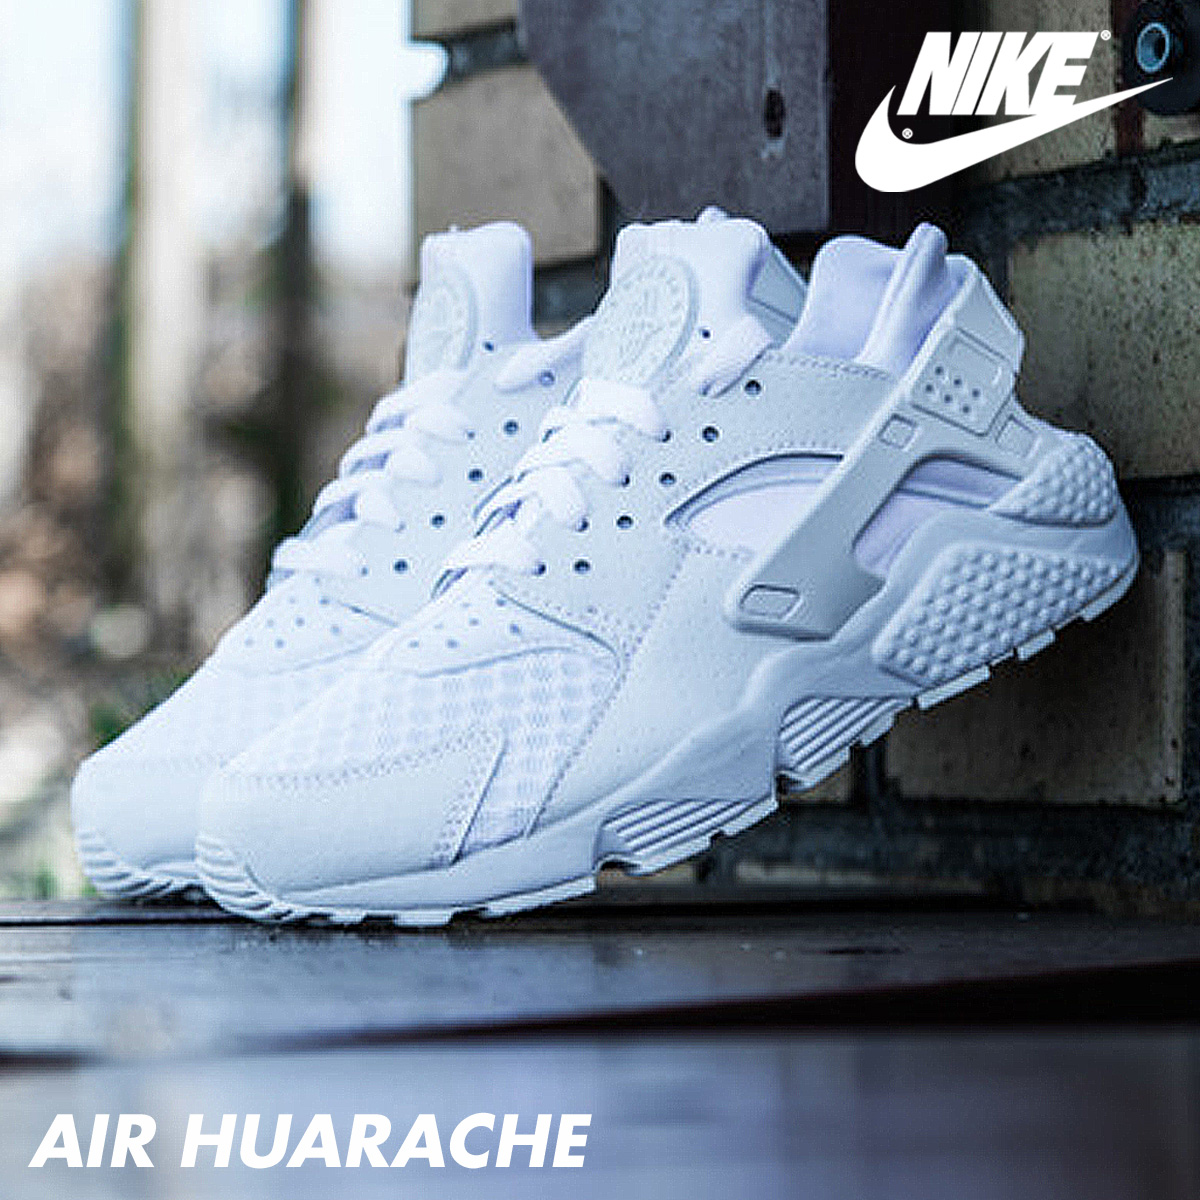 watch 1789e 413f9 Nike NIKE エアハラチスニーカー AIR HUARACHE 318,429-111 men s shoes white  7 8  Shinnyu load